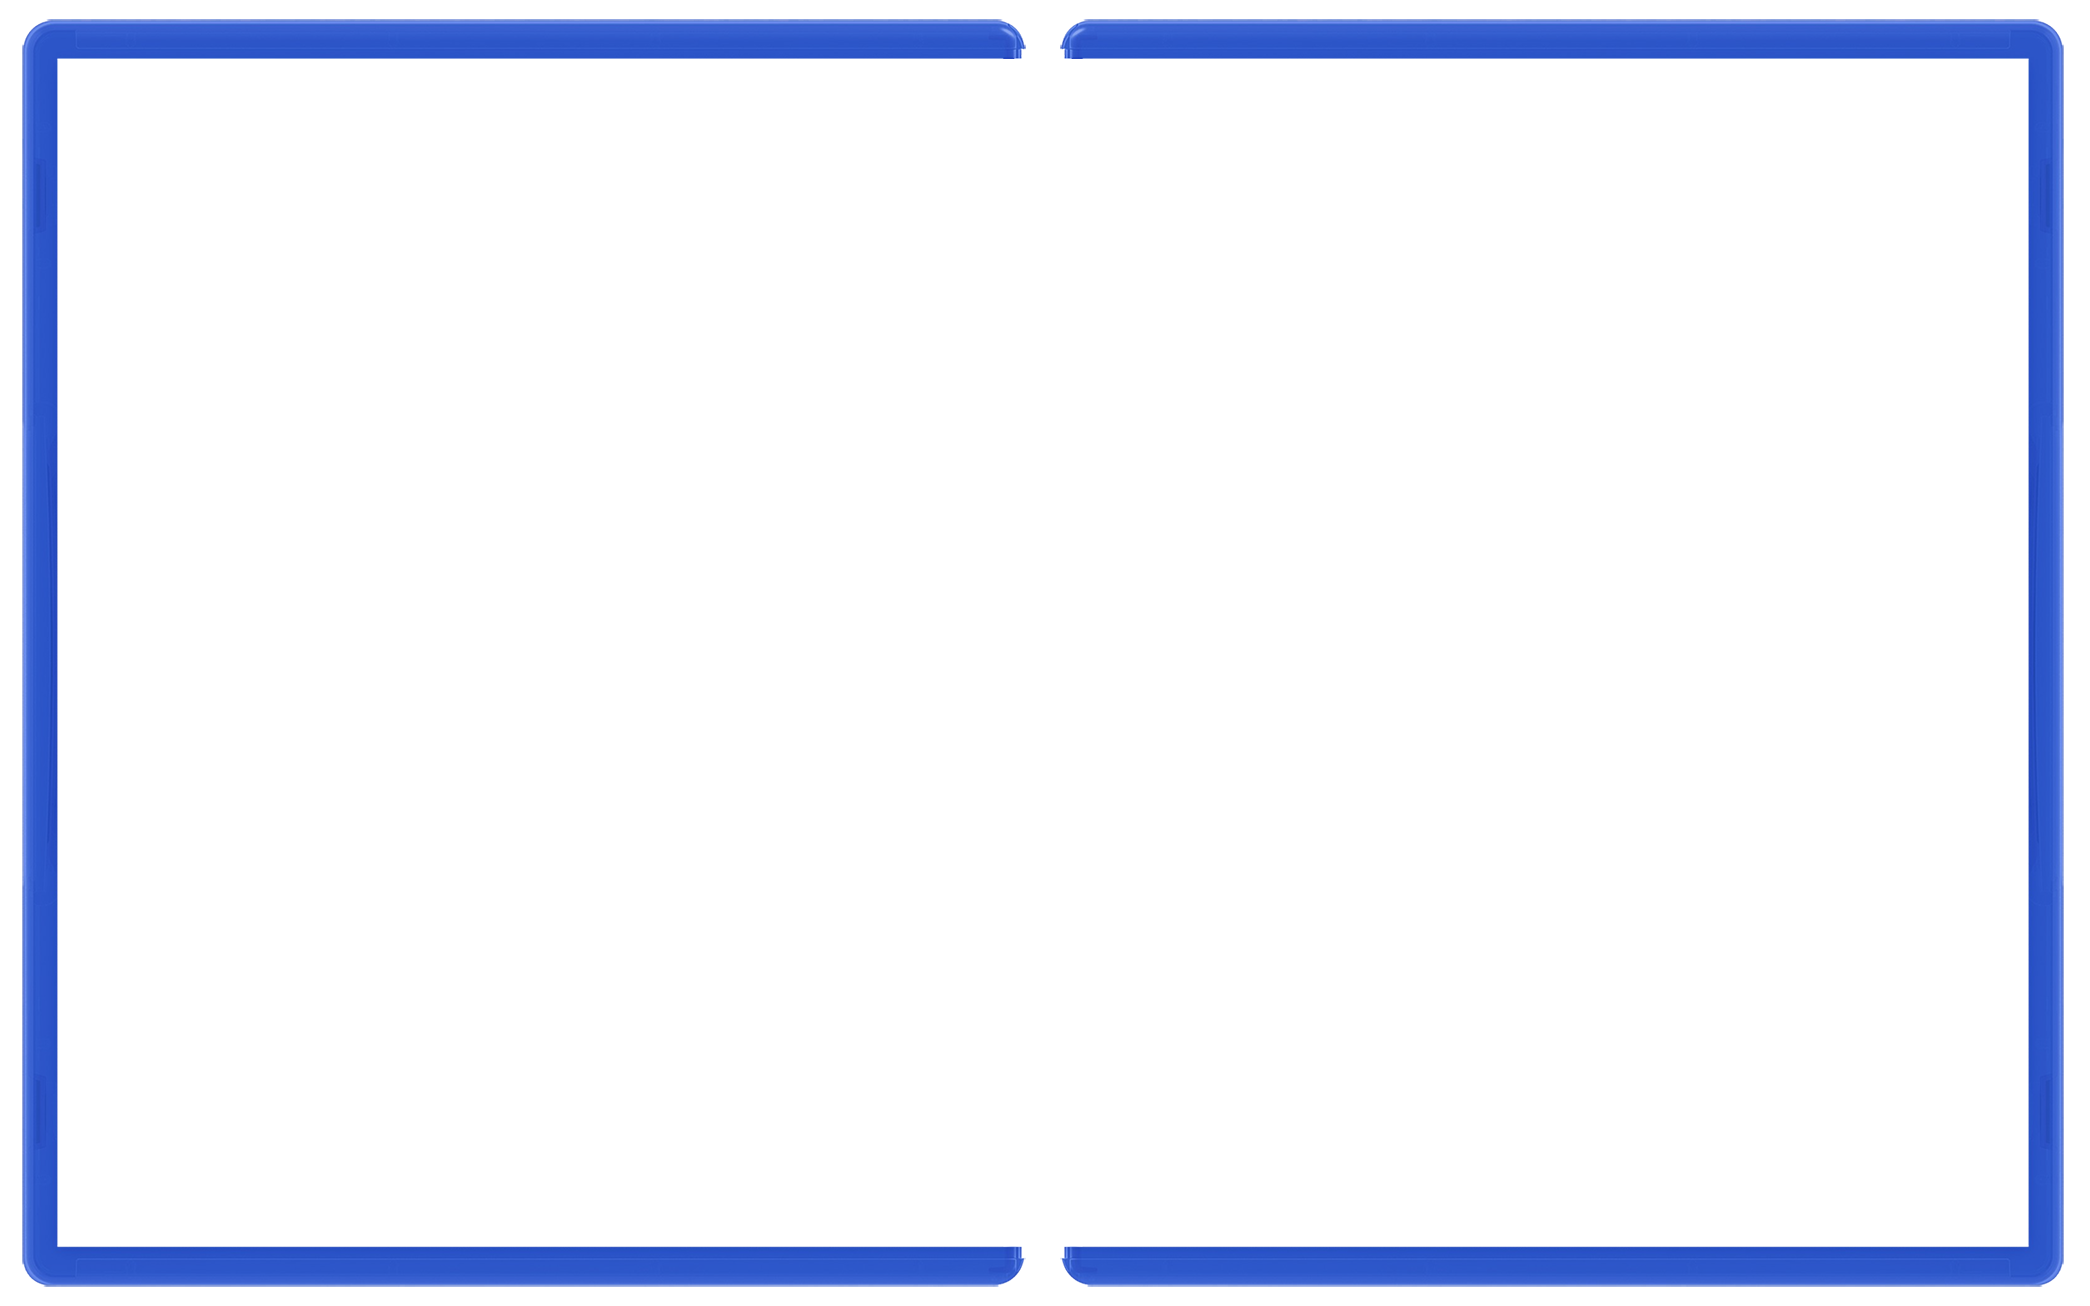 ps4 blue template cover gigabeat